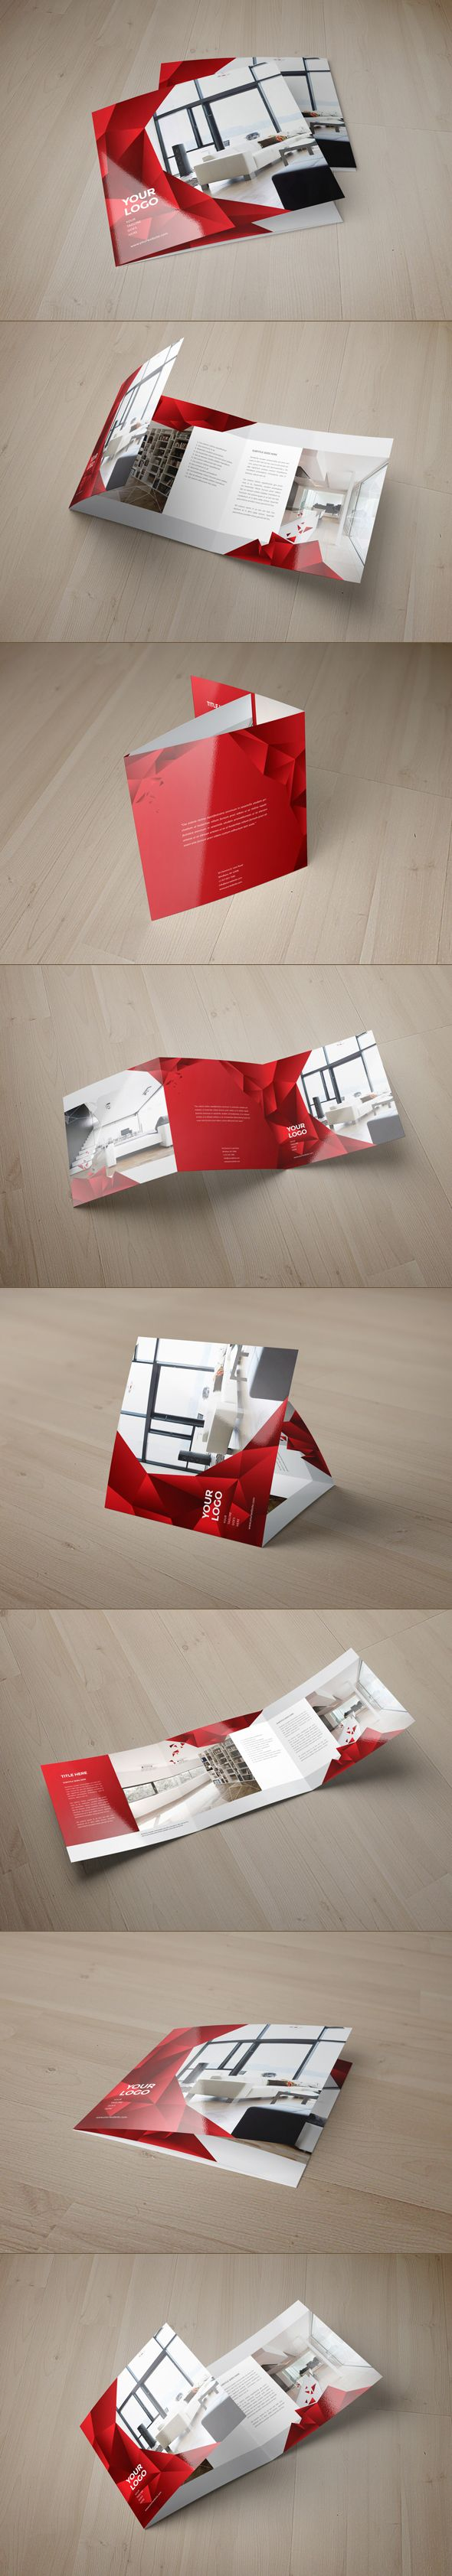 Square Interior Design Trifold by Abra Design, via Behance